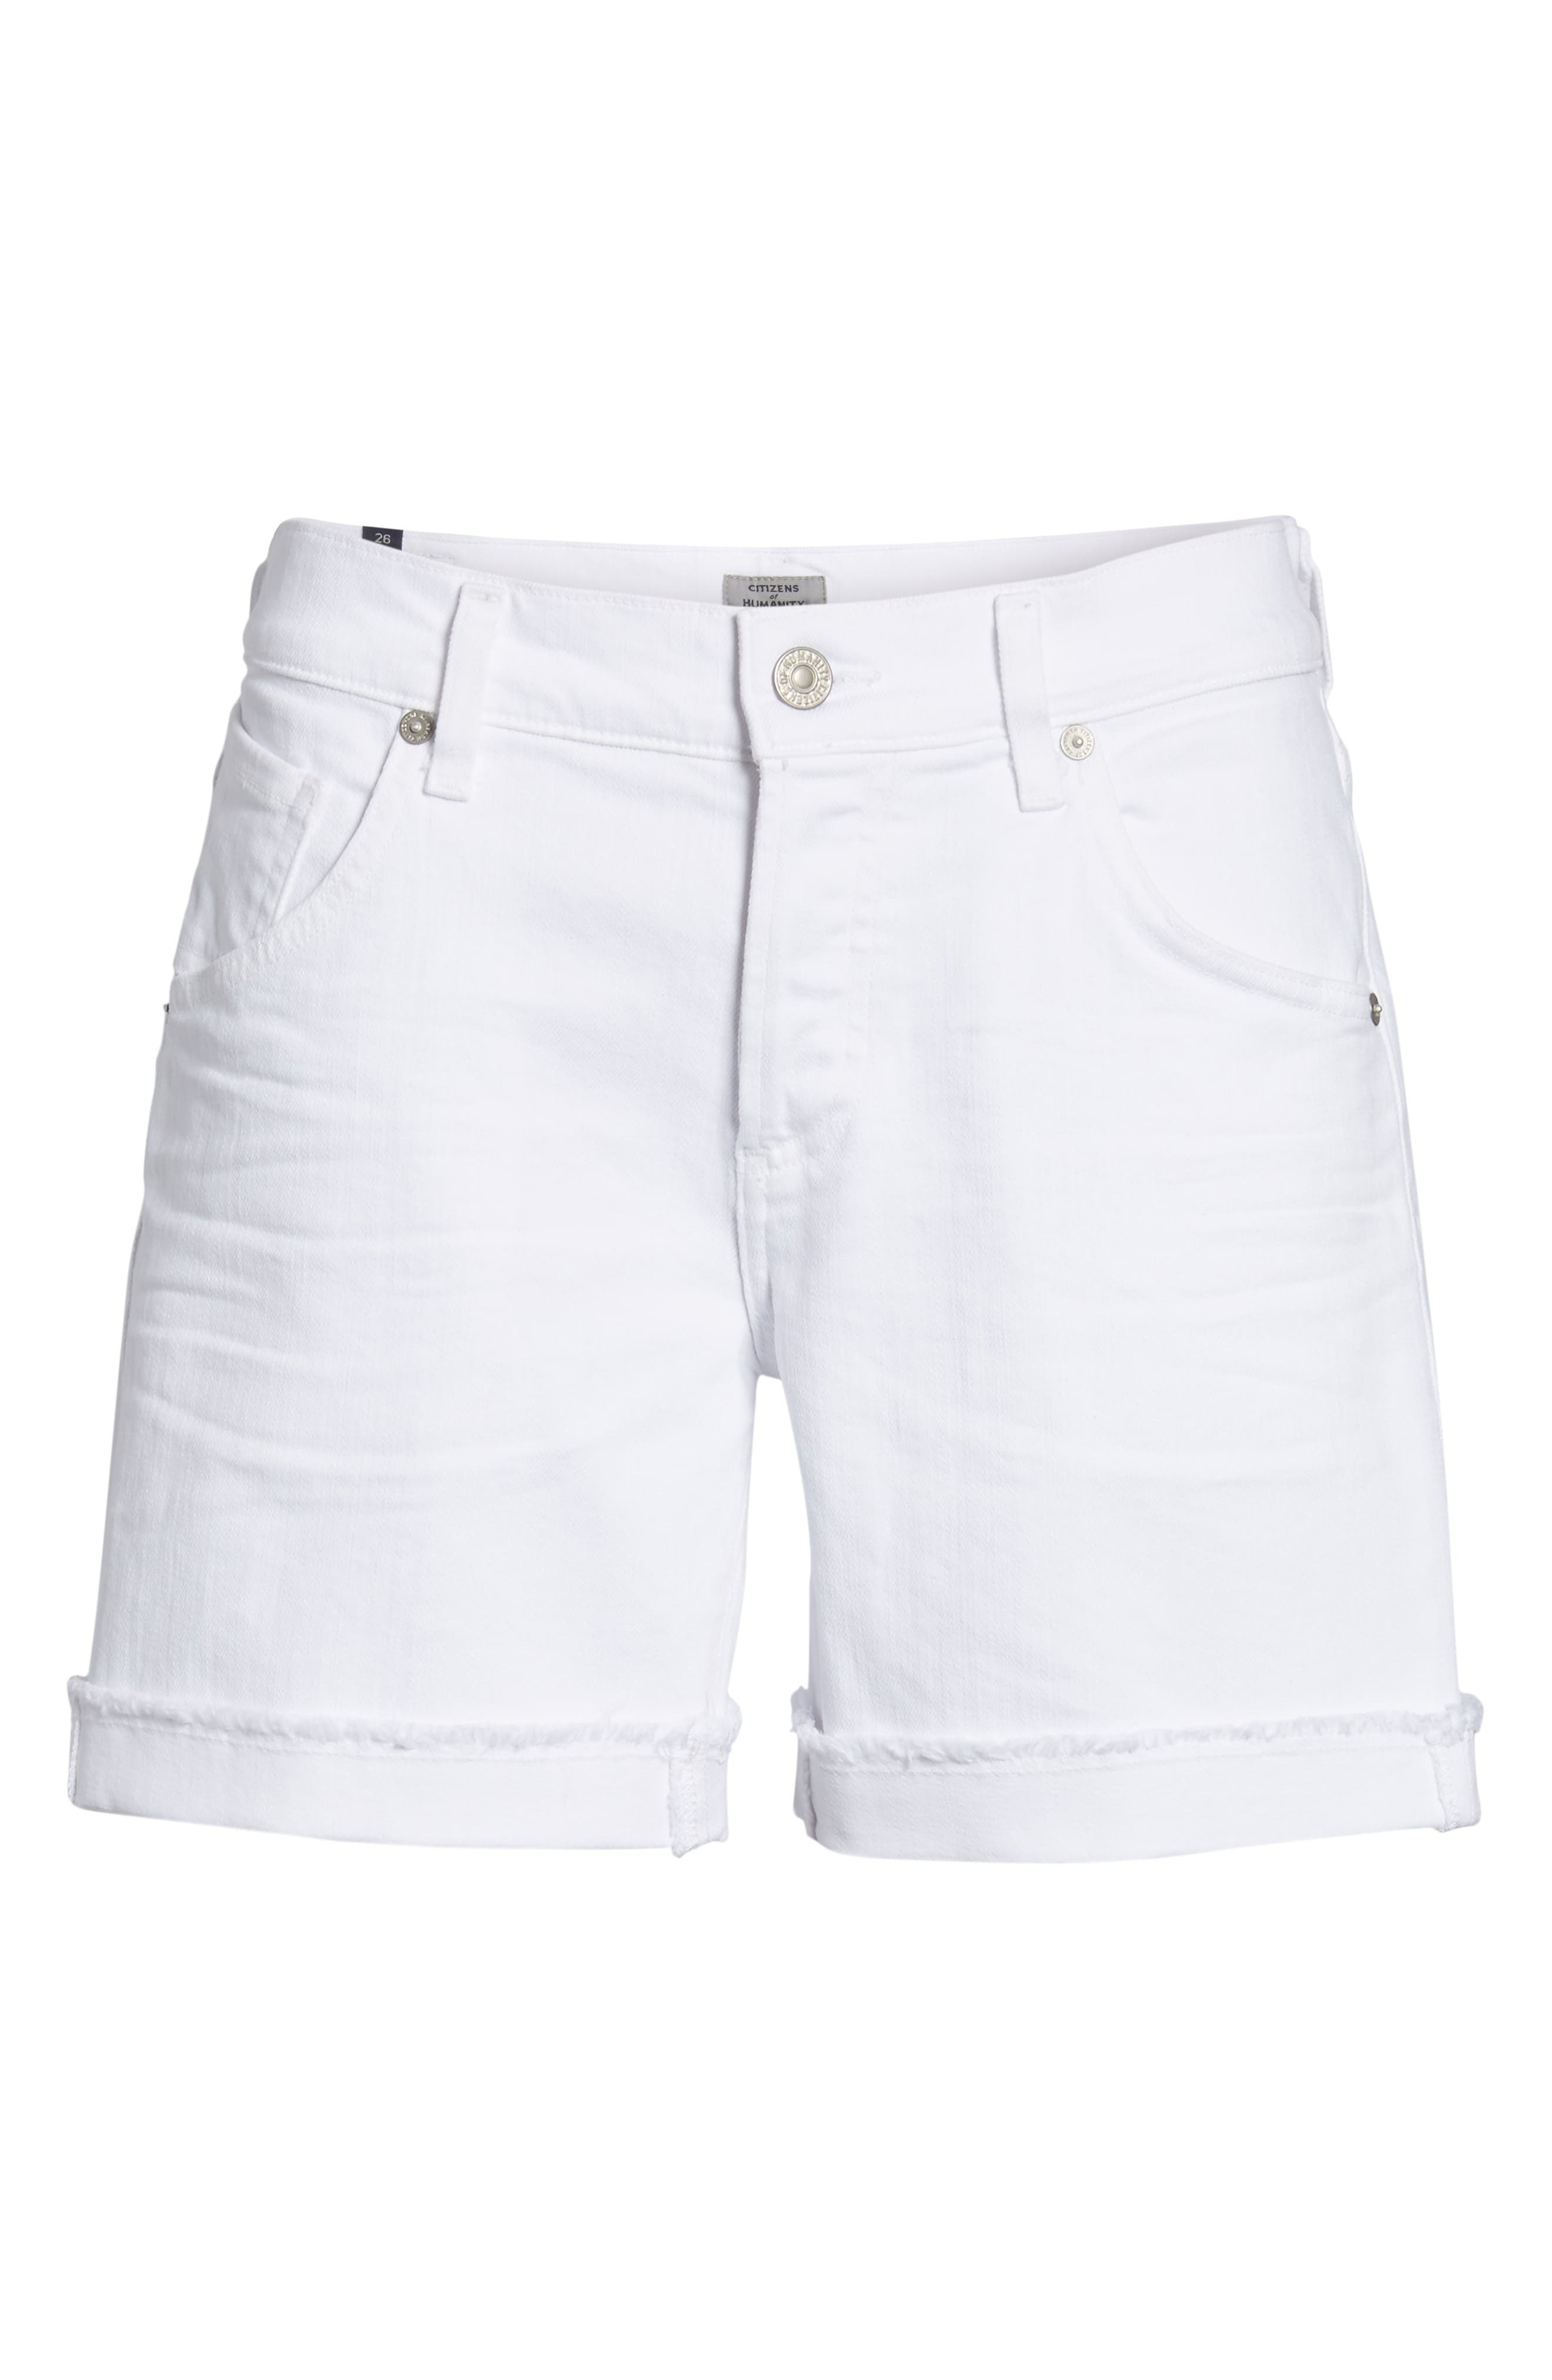 CITIZENS OF HUMANITY, Skyler Denim Shorts, Alternate thumbnail 7, color, OPTIC WHITE